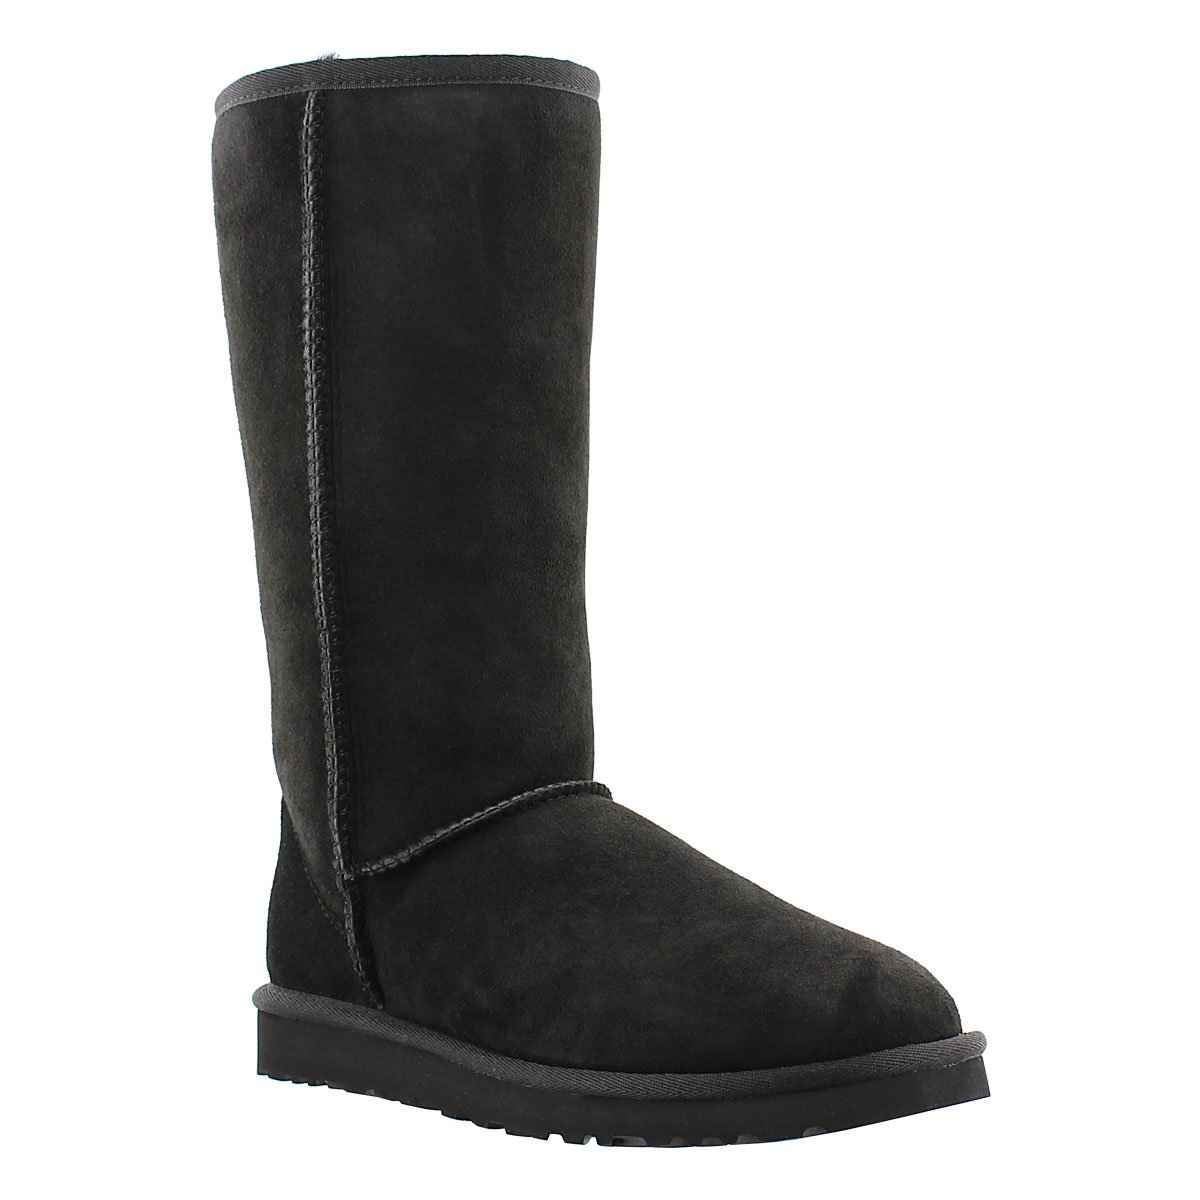 Womens Size 12 Boots eXWp5Ohp